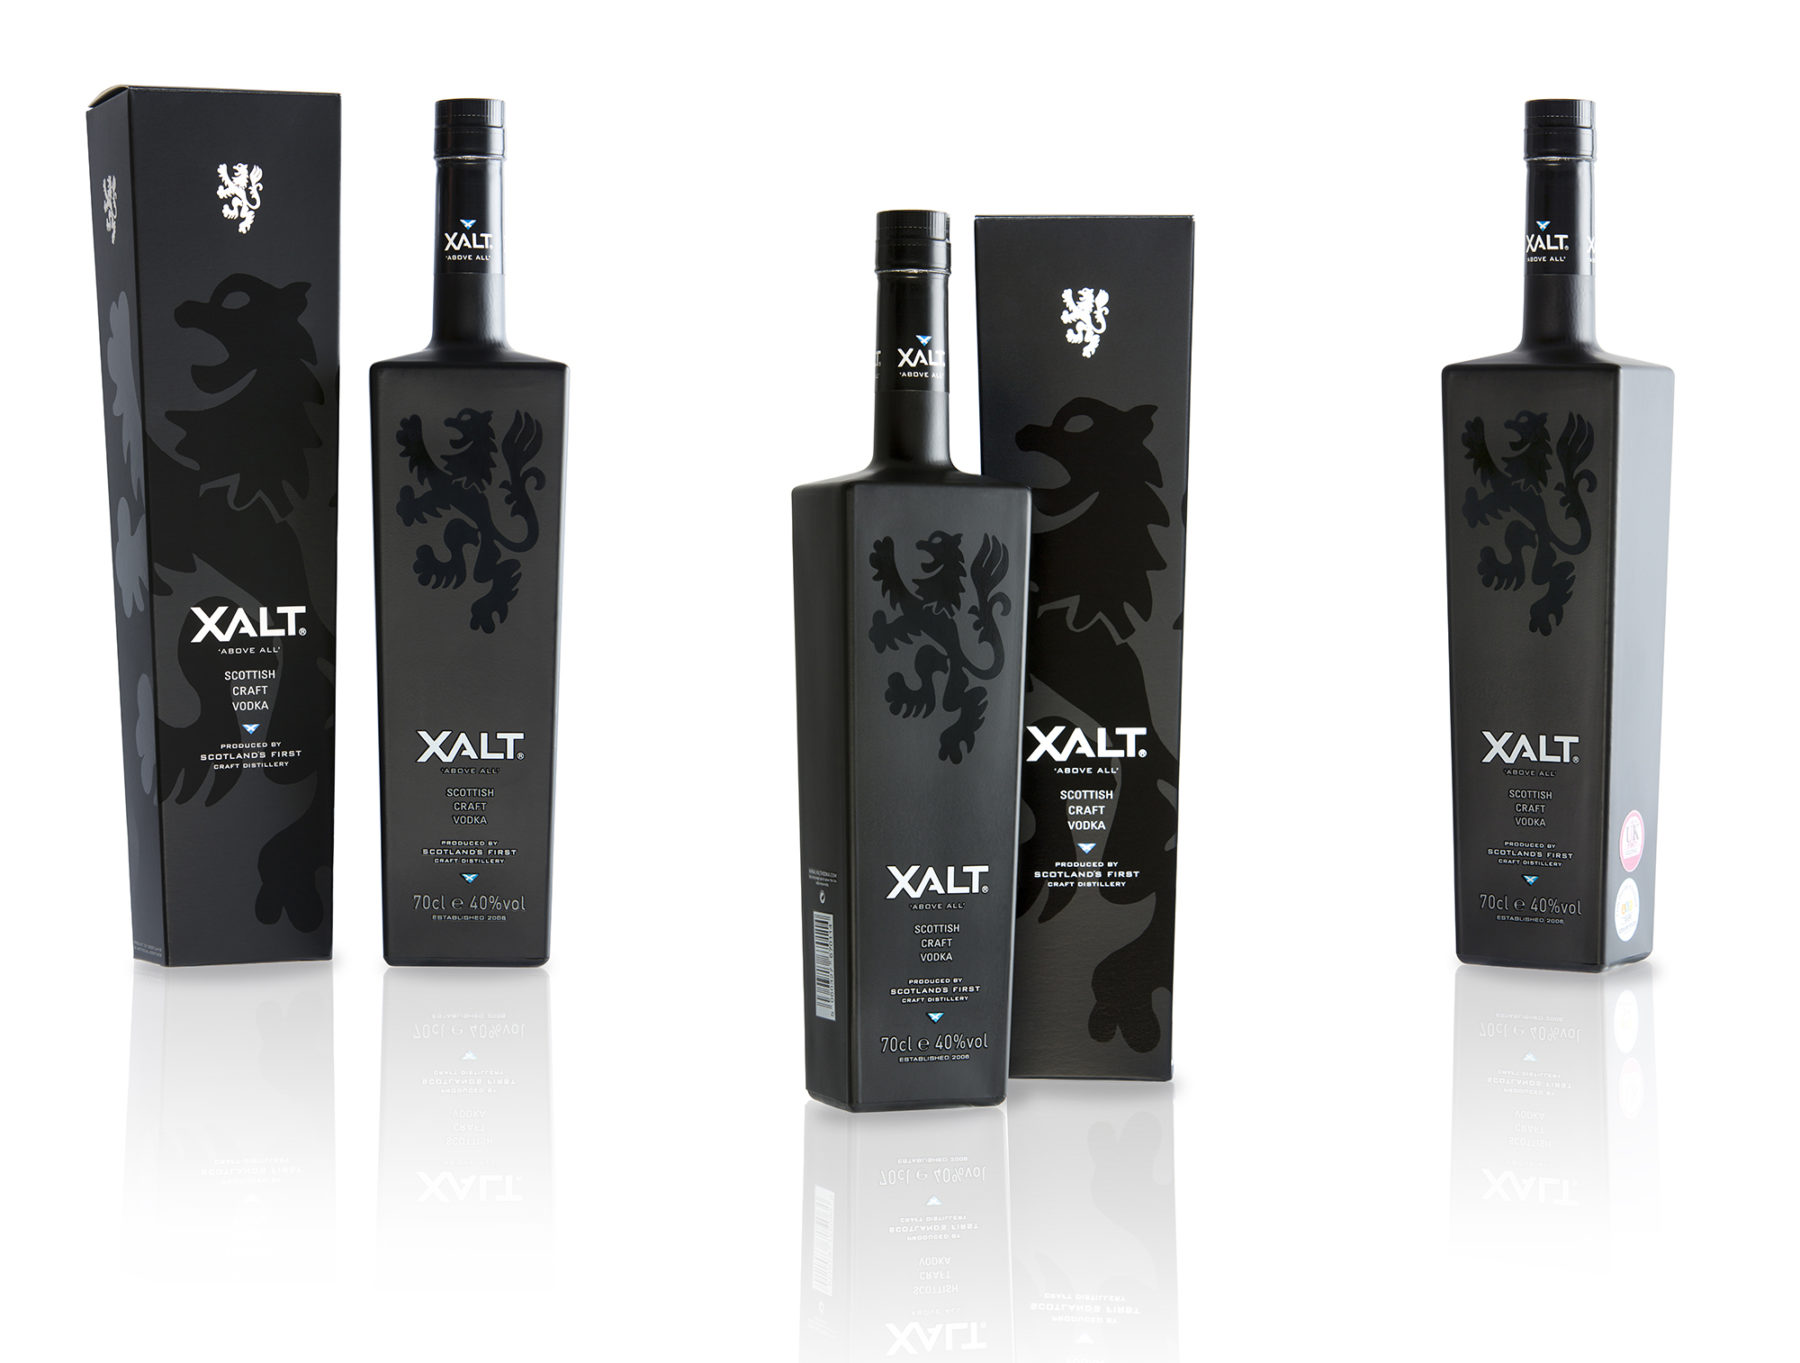 Xalt vodka | image by McAteer Photograph